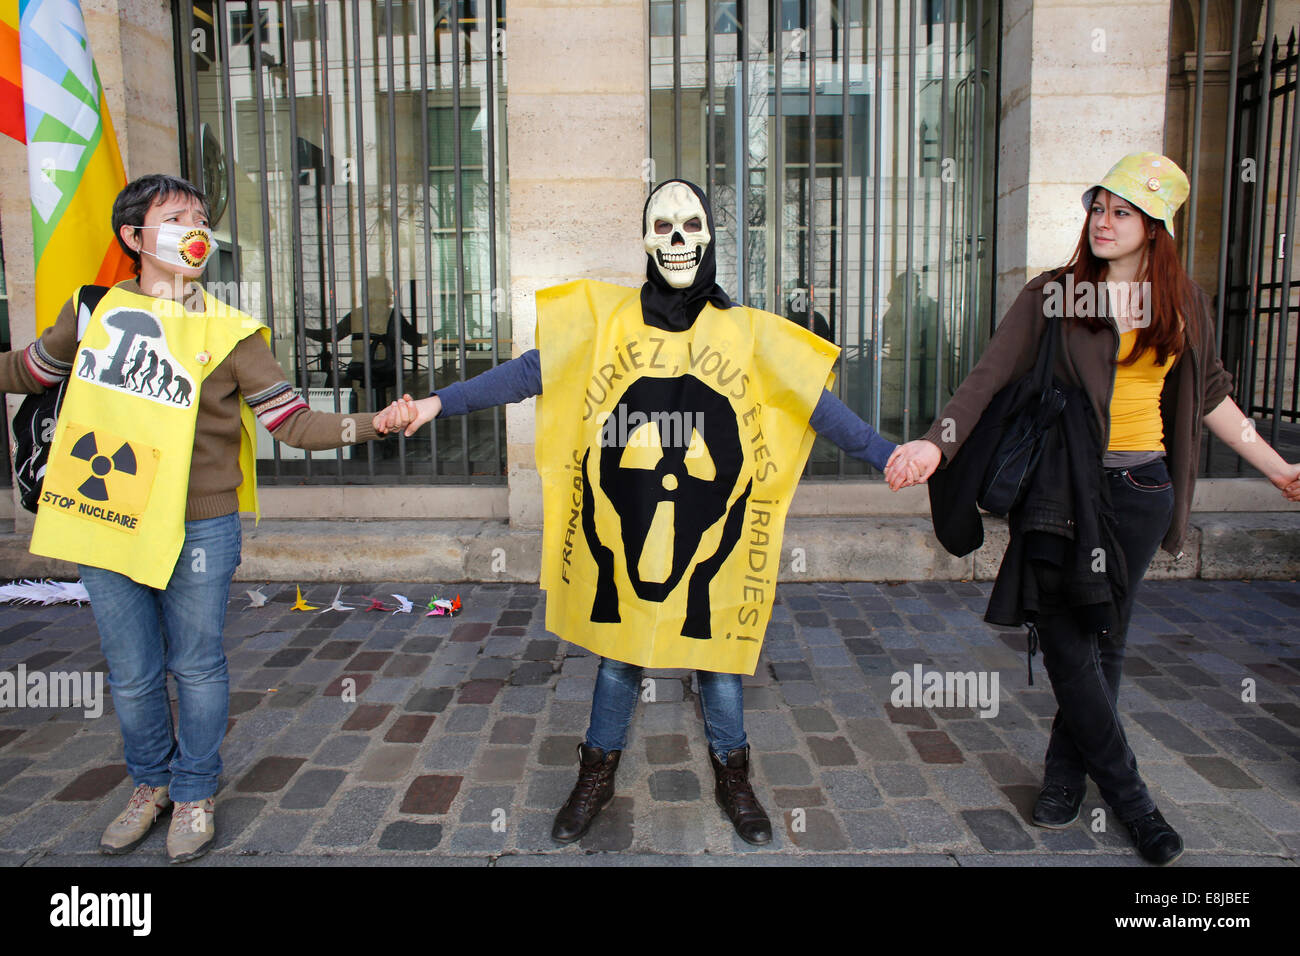 Demonstration against nuclear energy Stock Photo